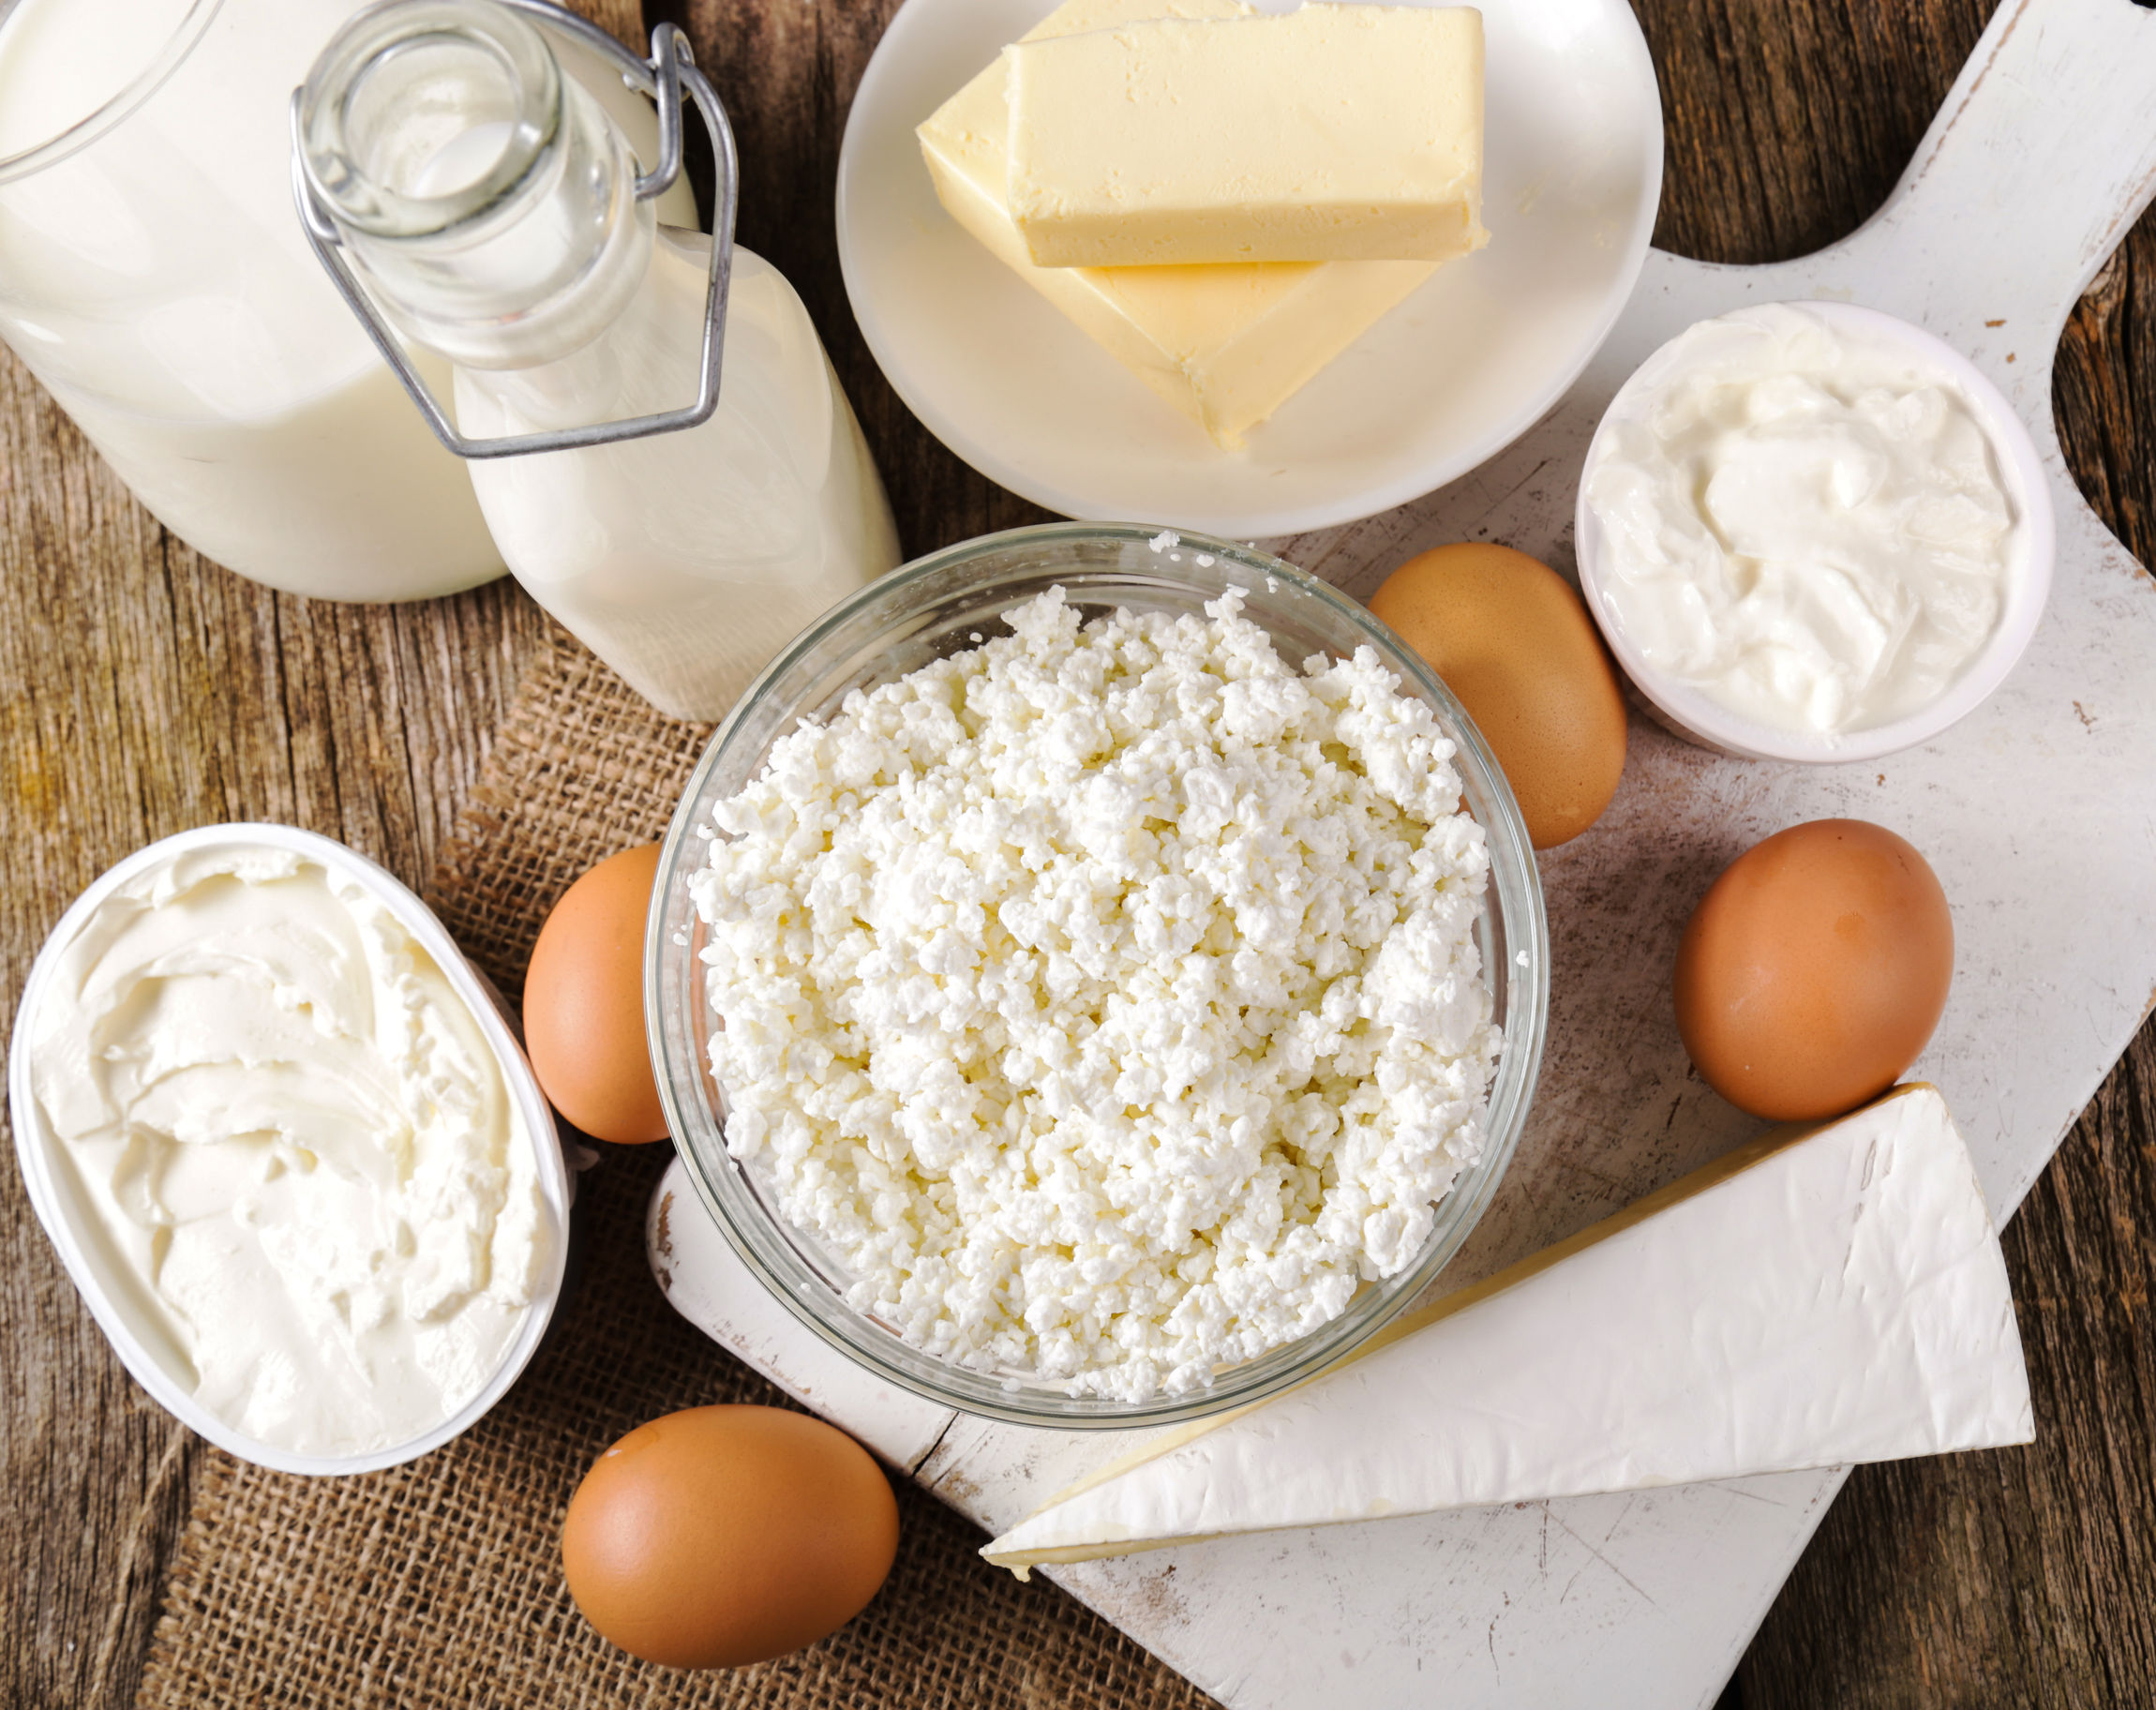 Dairy for fertility